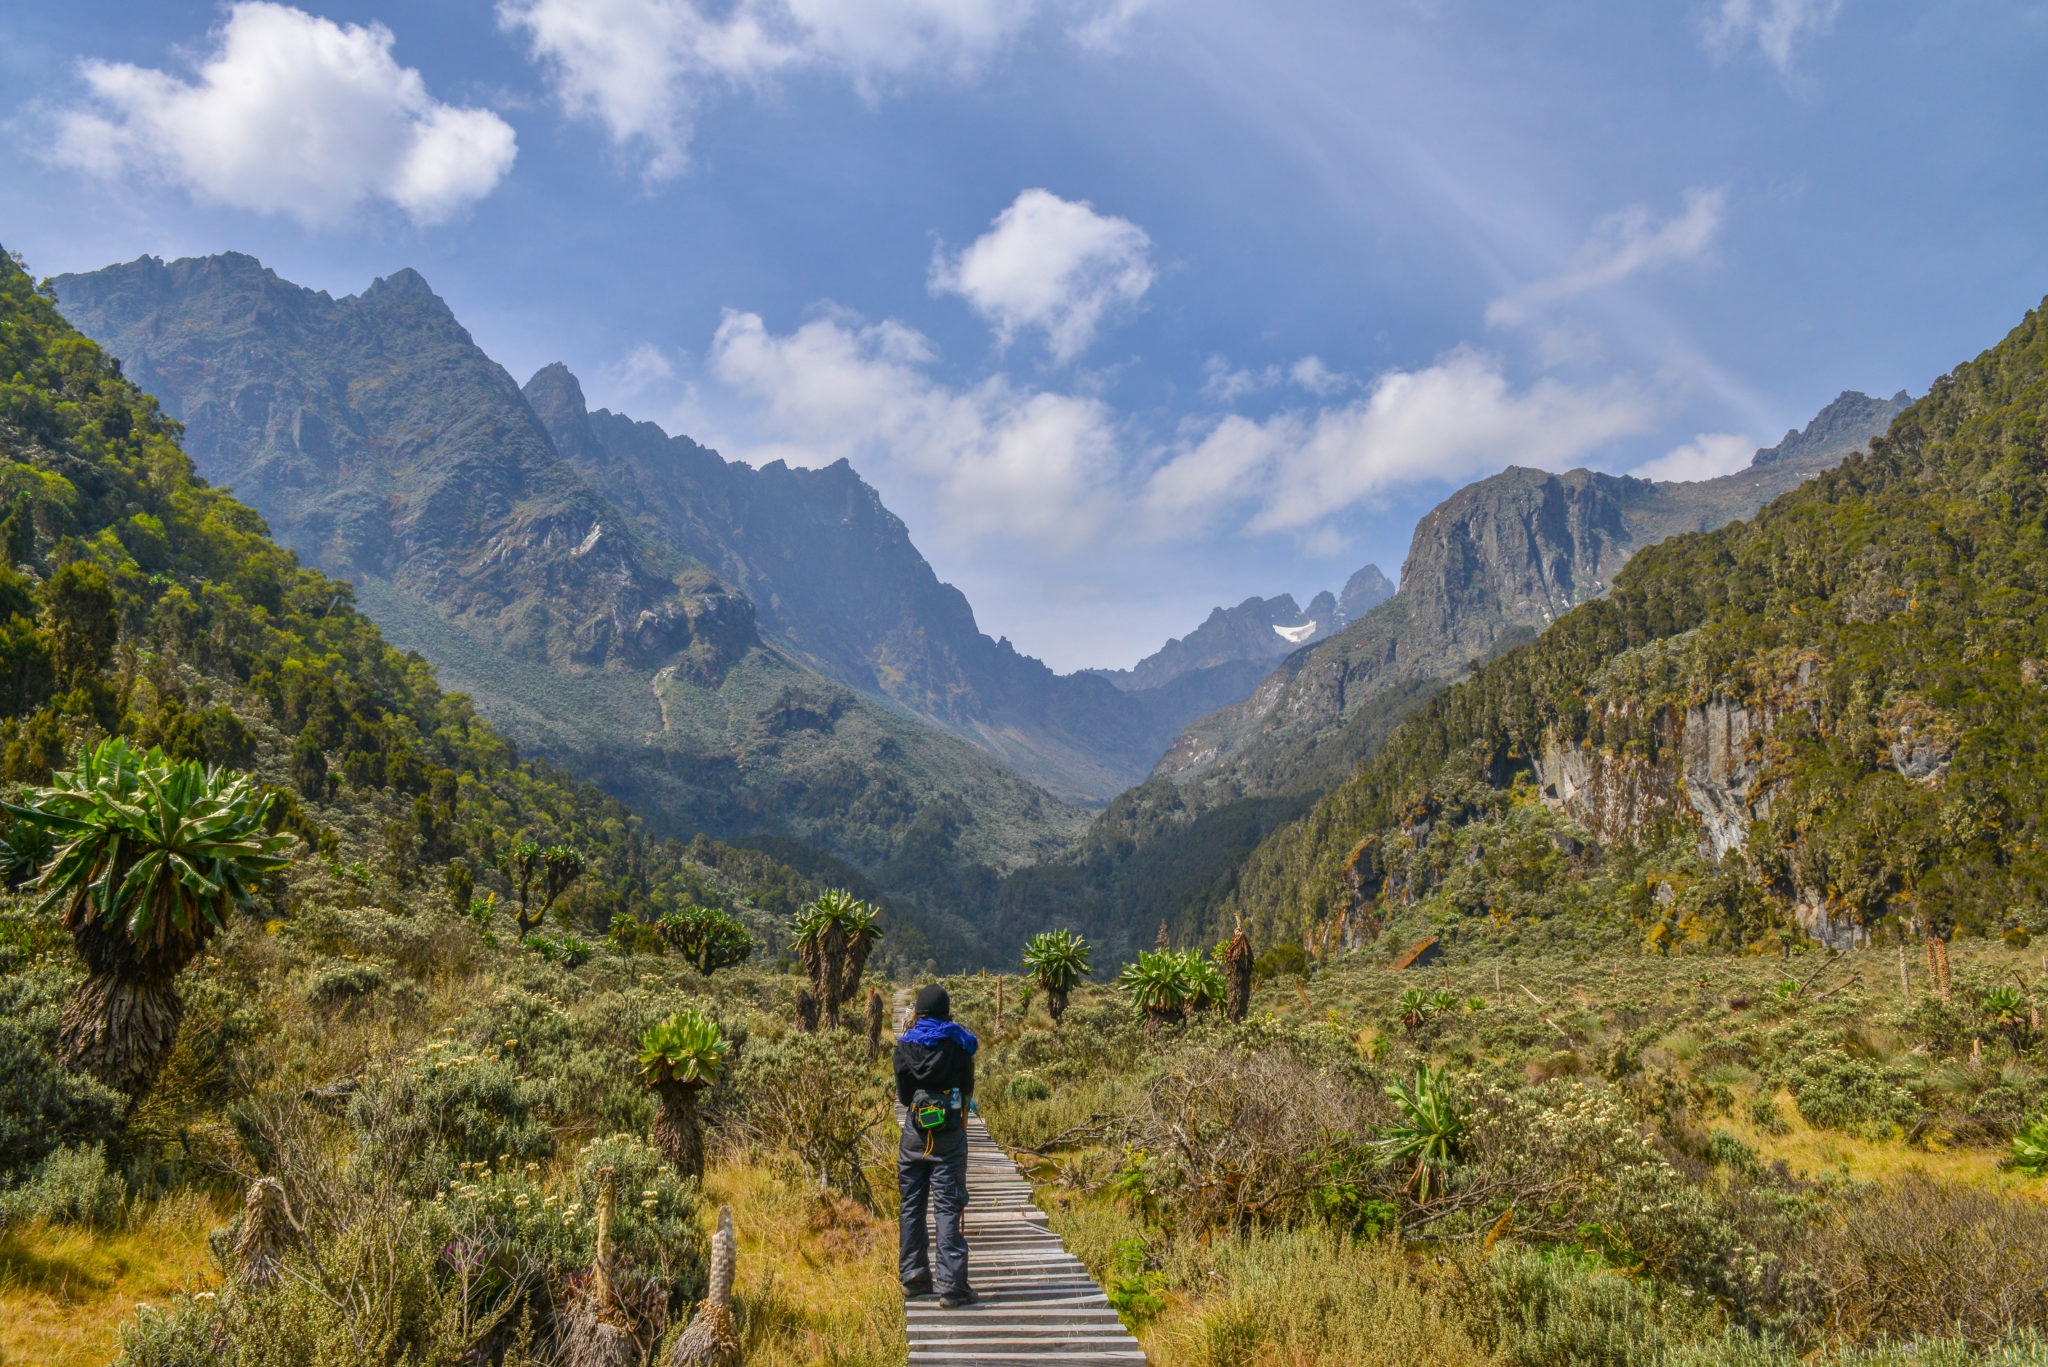 Top Things To Do In Uganda - HIKE THE RWENZORI MOUNTAINS